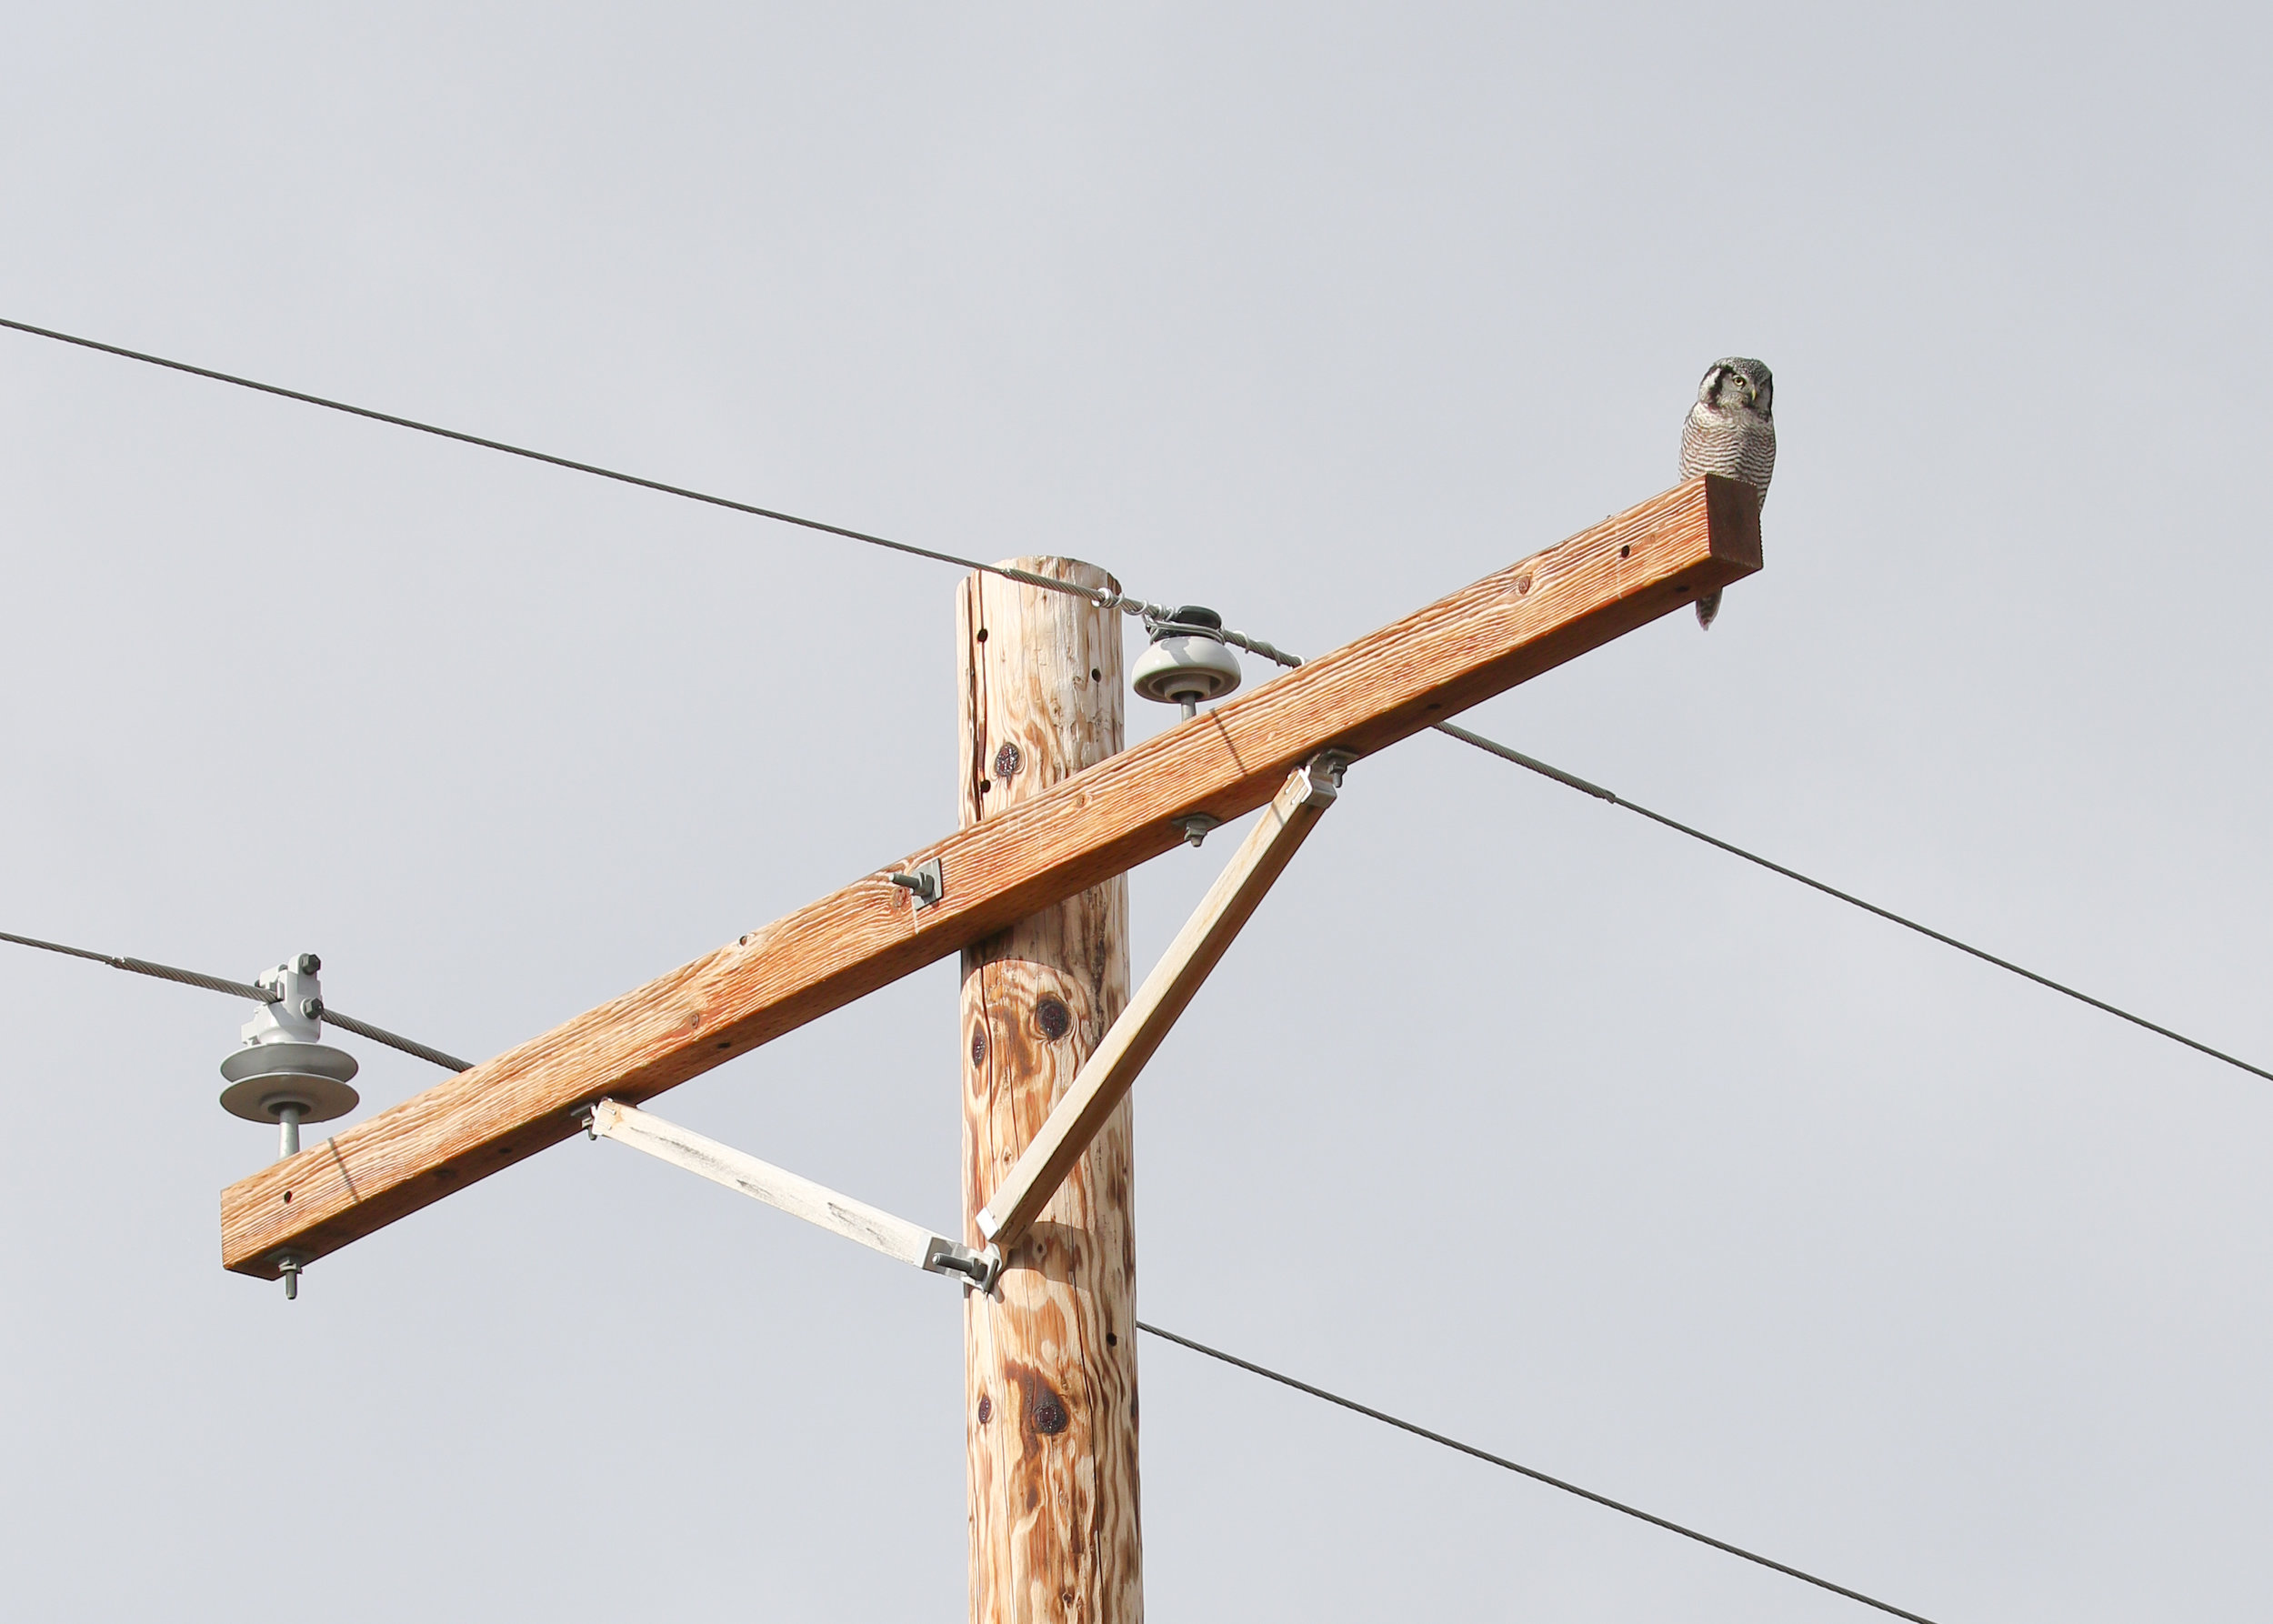 This telephone pole gives a sense of scale for the actual size of a Northern Hawk Owl  100mm f 8.0 1/400 sec ISO 100